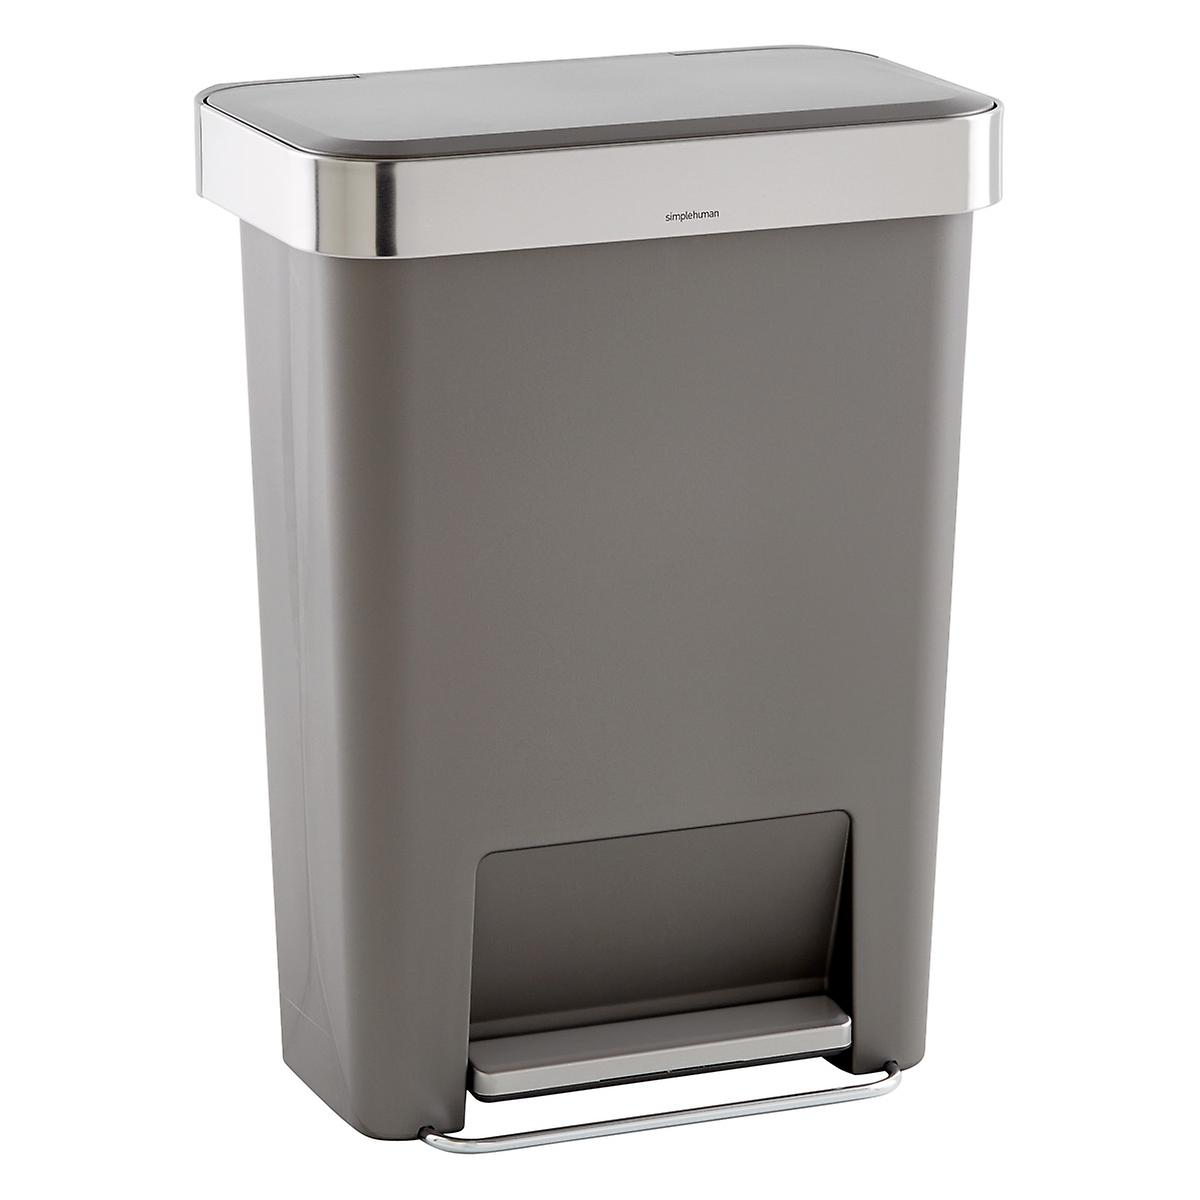 Grey 12 gal. Rectangular Trash Can